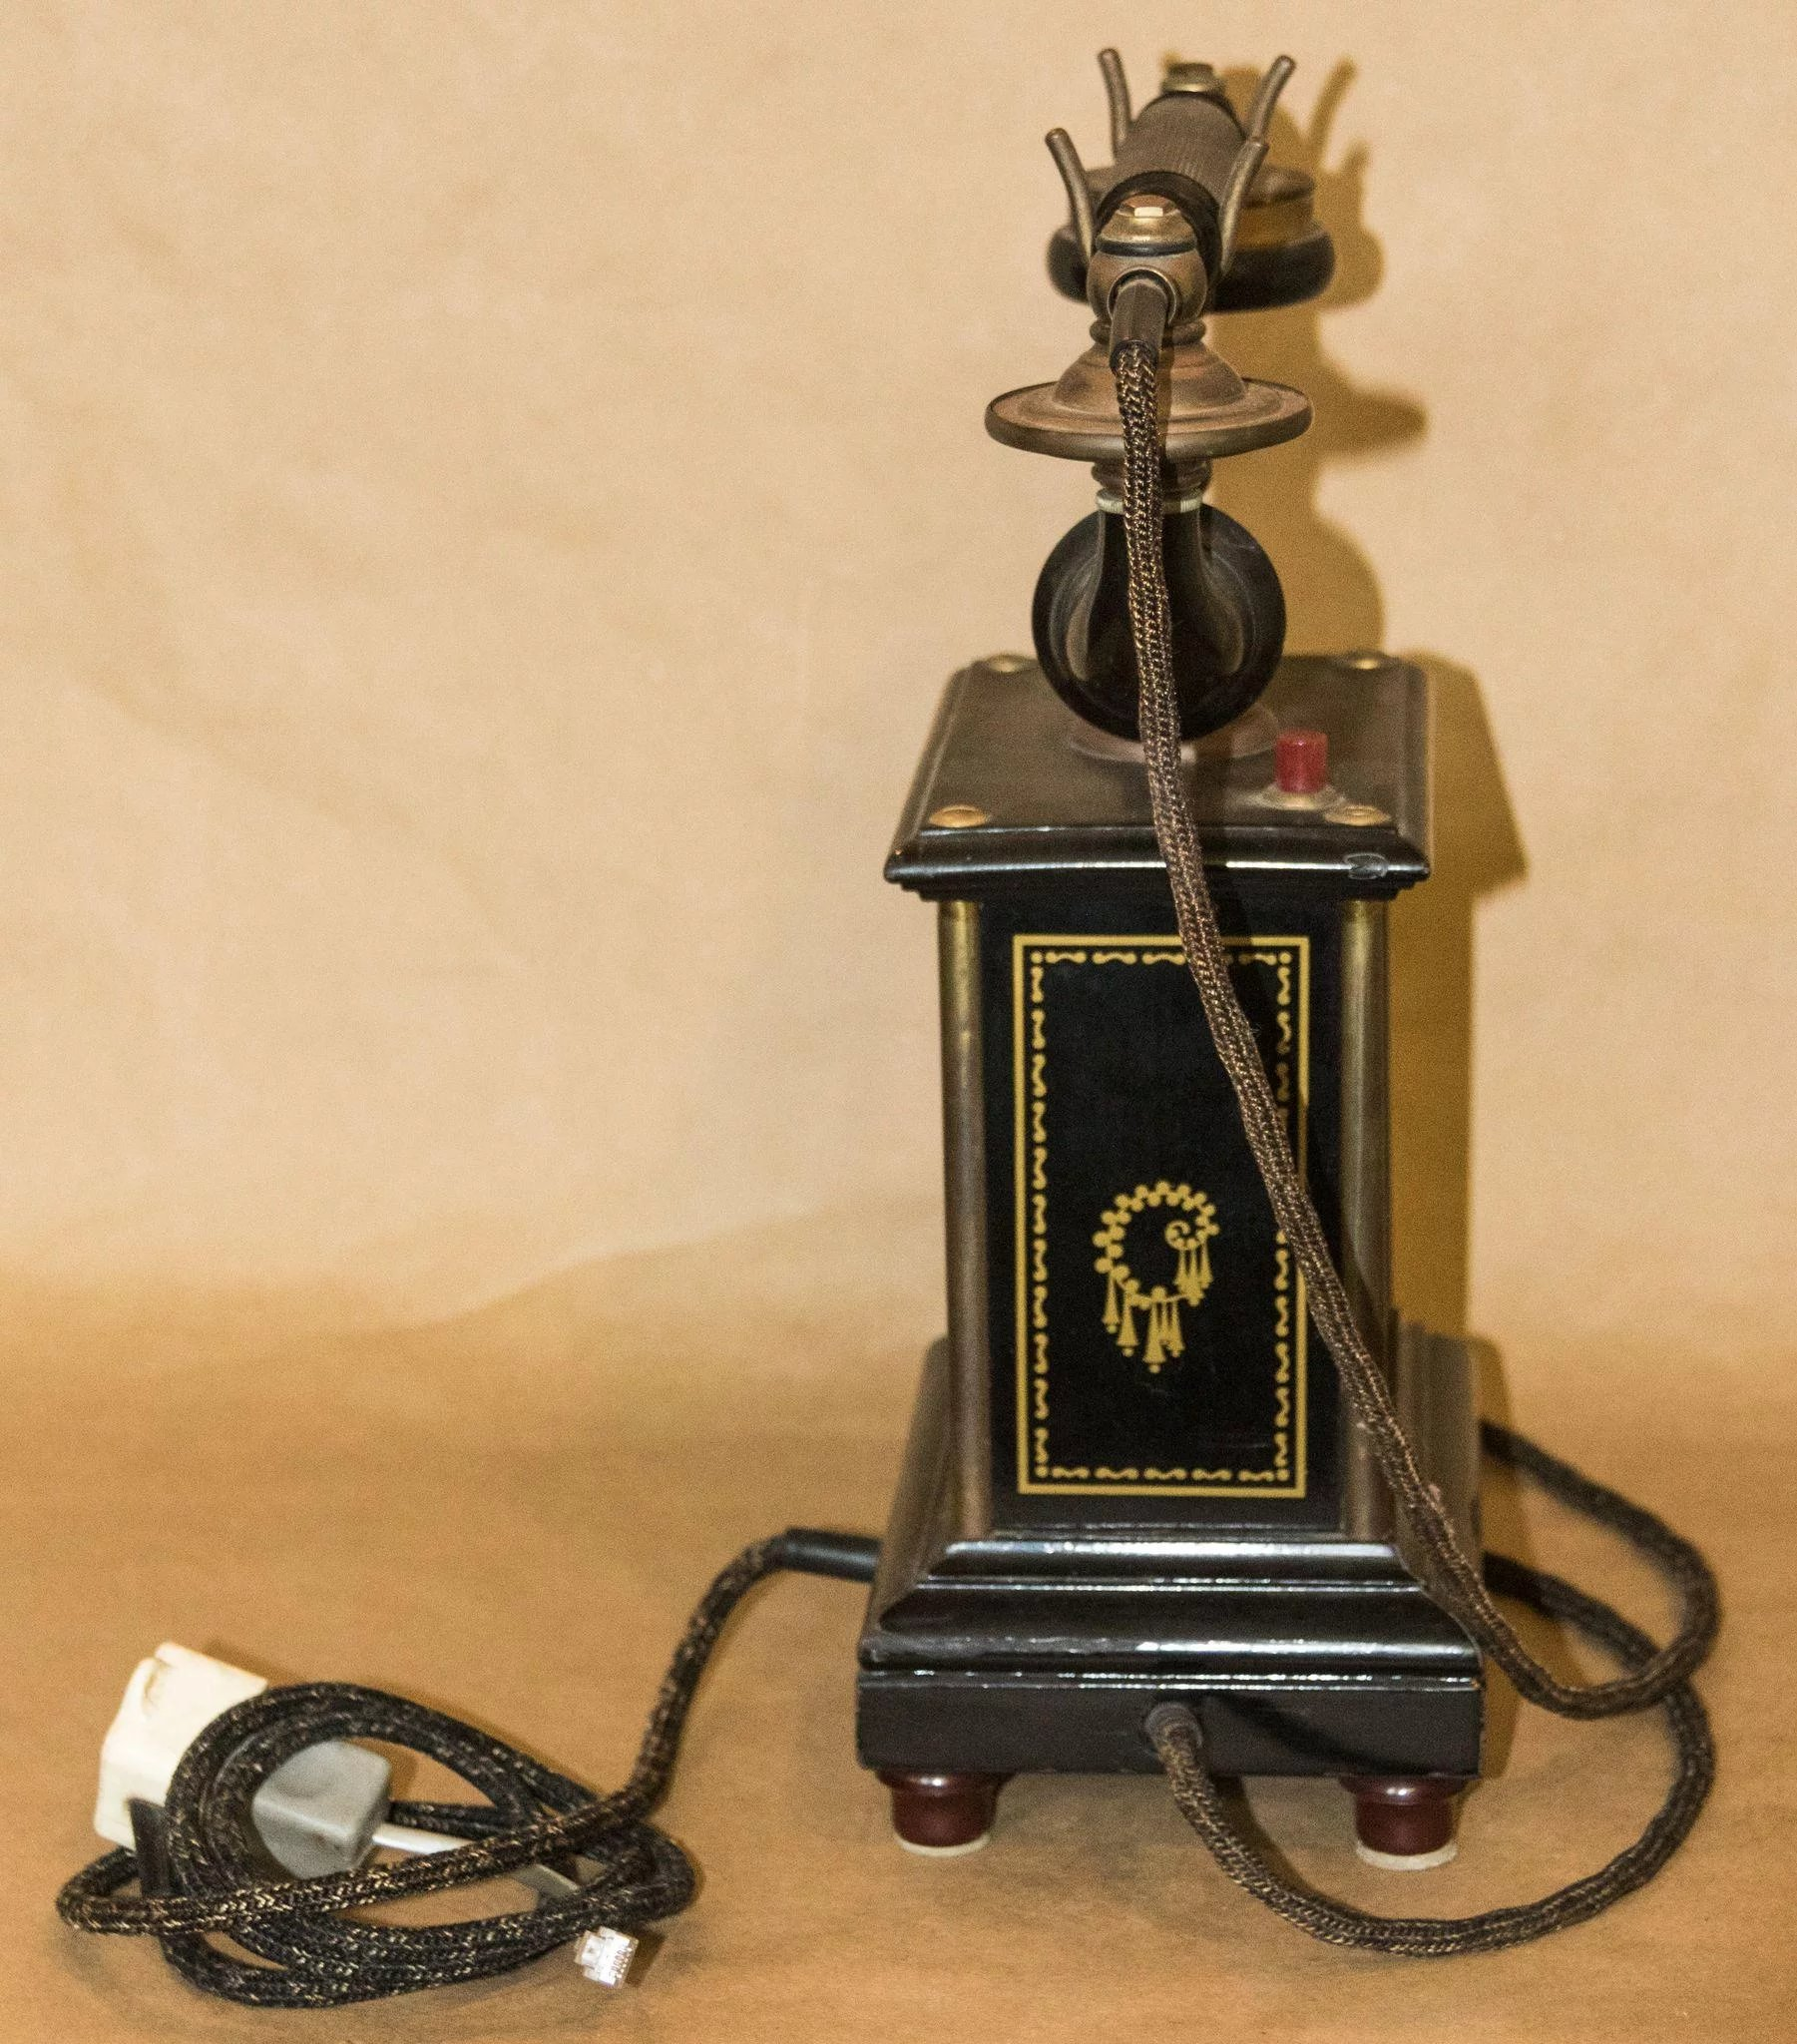 Antique Telephone marked ALLM. TELEFON A.-B. by L.M ...